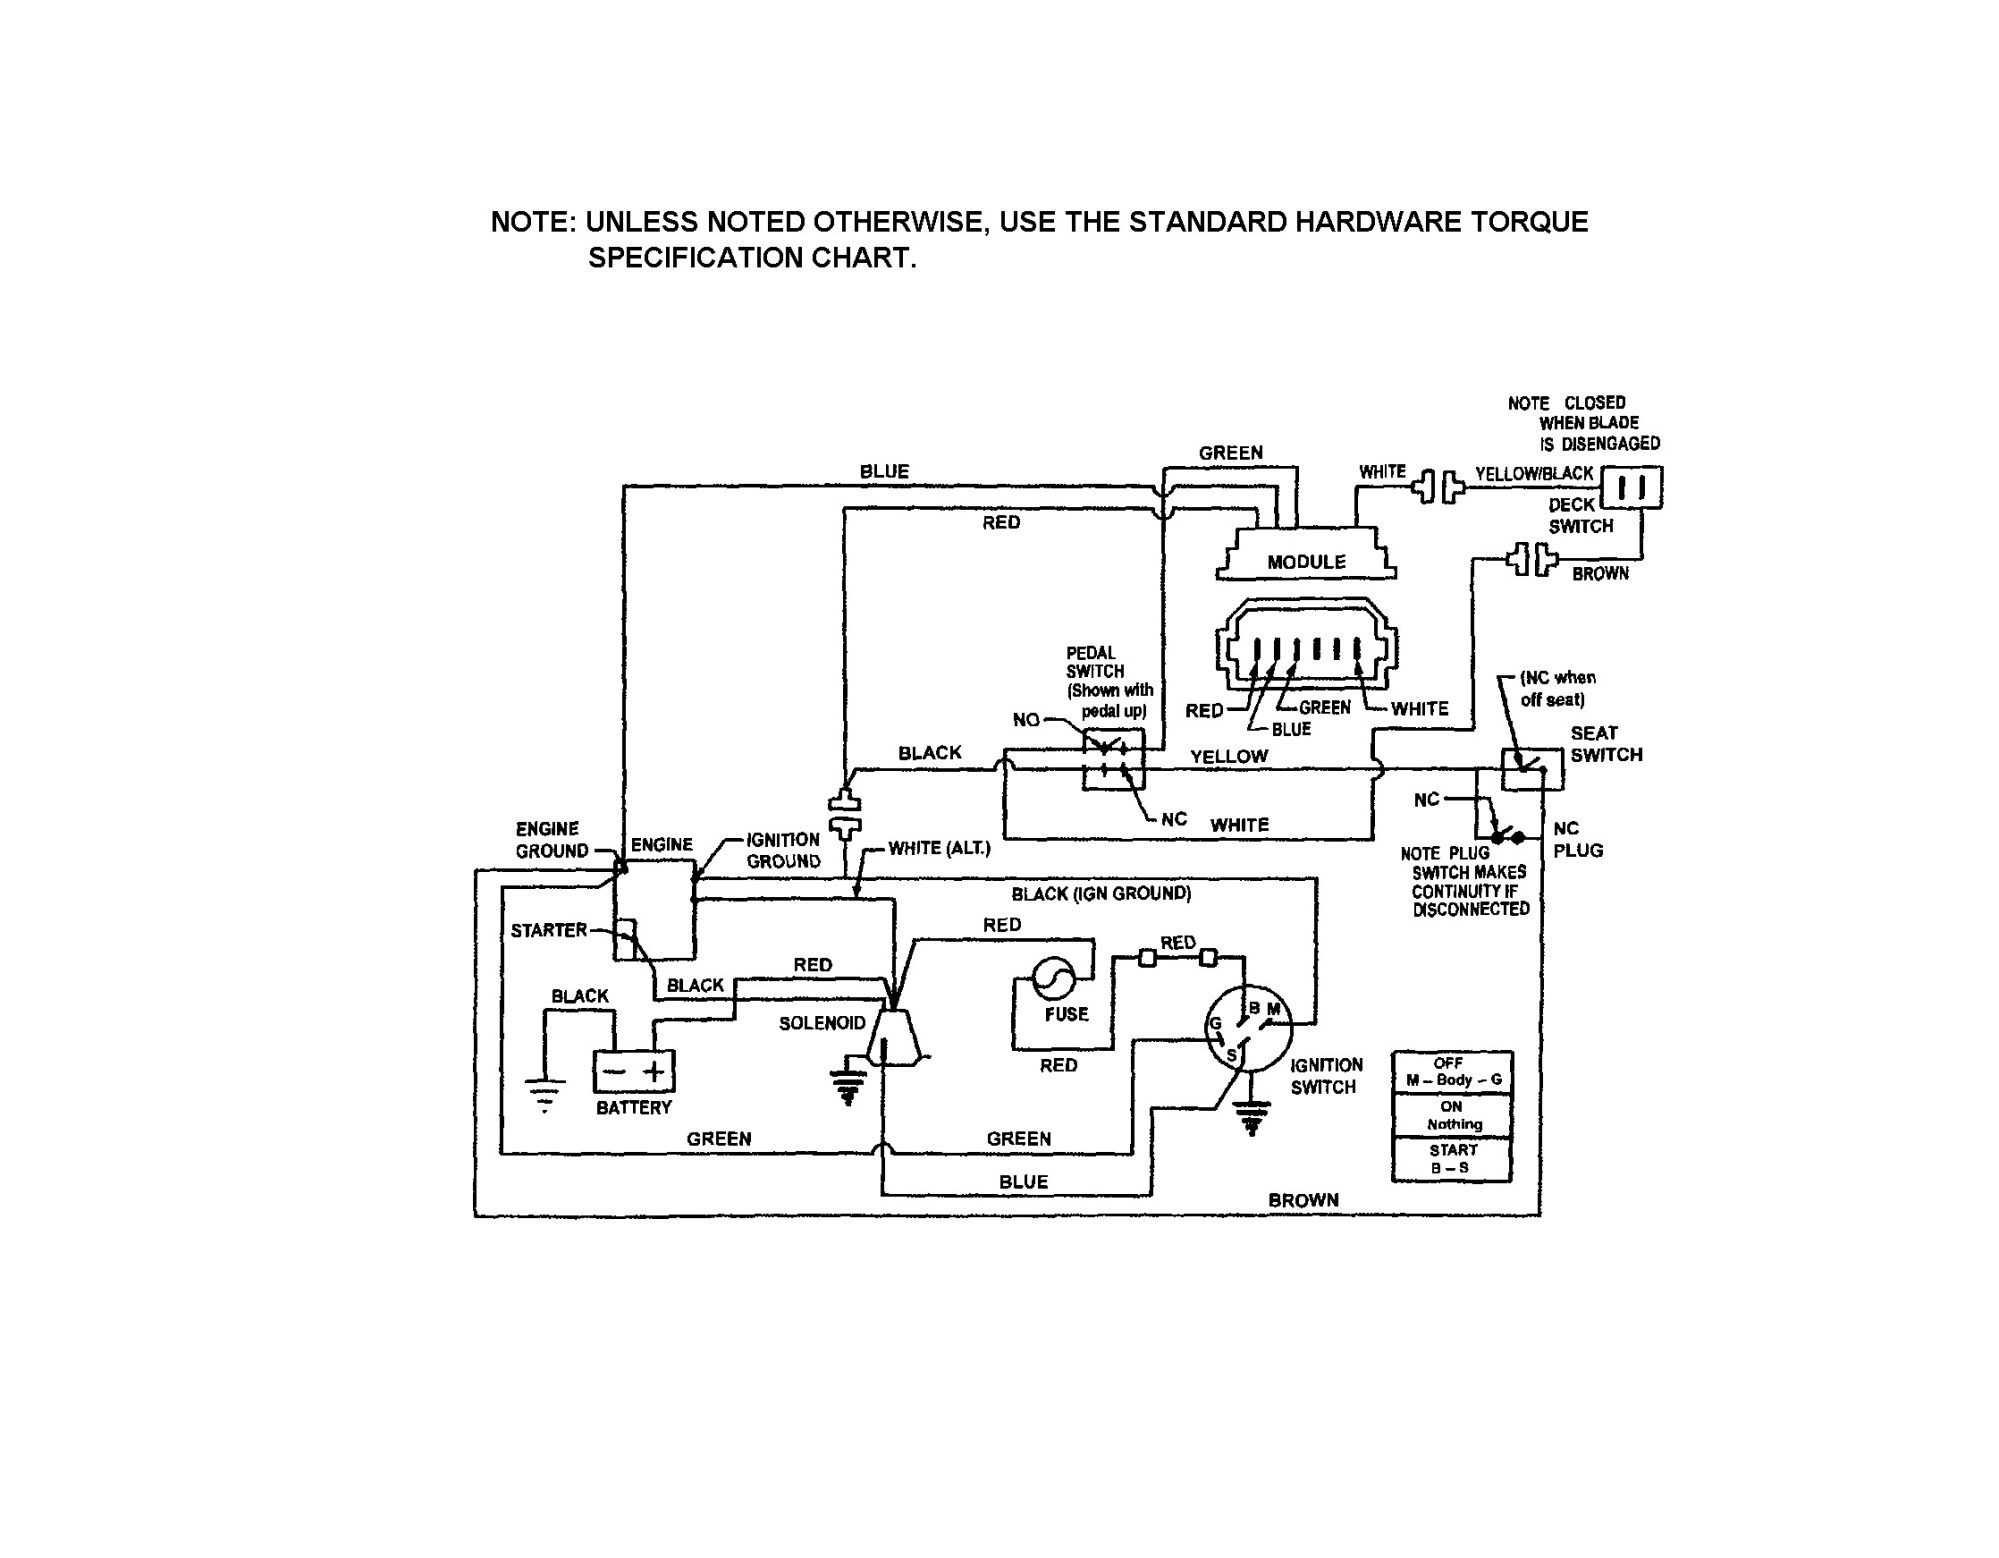 hight resolution of 8 hp briggs coil wiring diagram free picture wiring diagram 8 hp briggs coil wiring diagram free picture